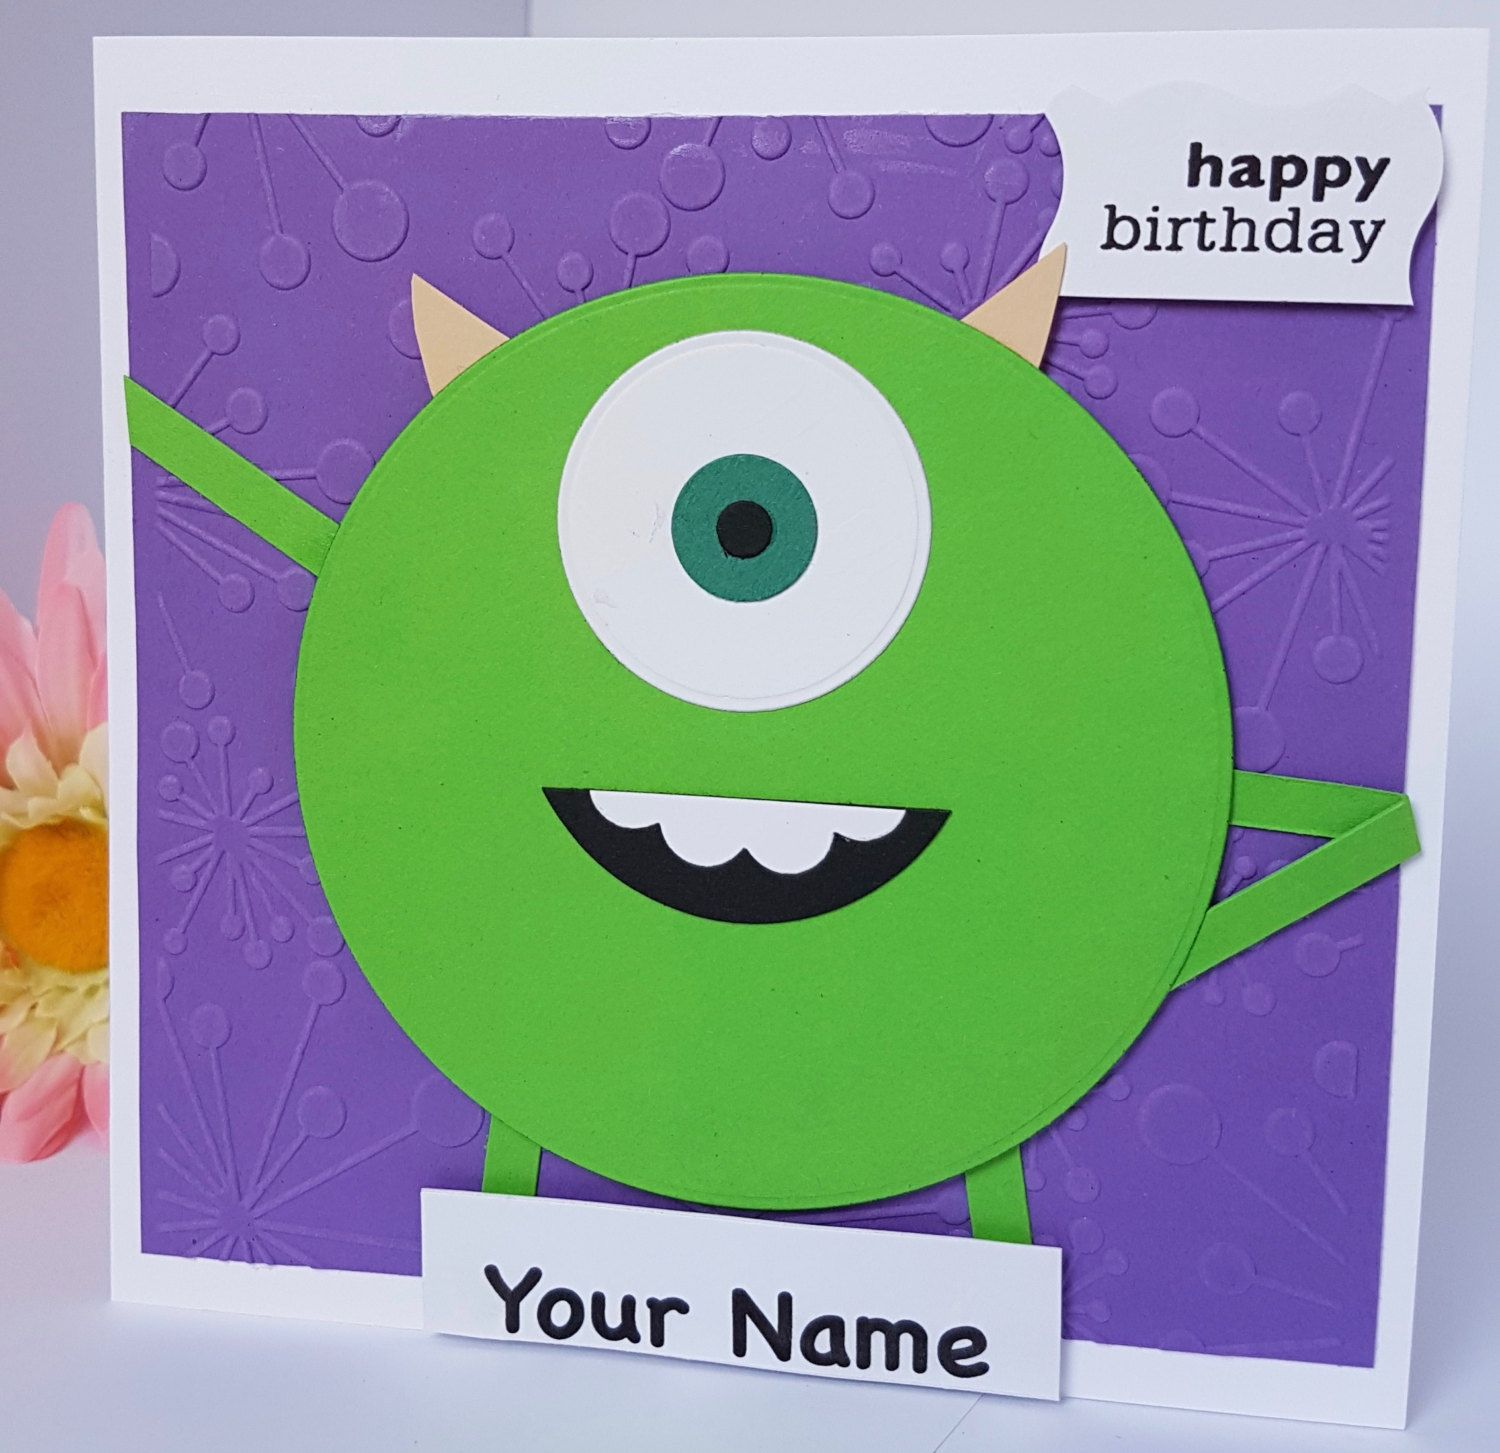 Personalised Mike Wazowski Monsters Inc Character Birthday Card Handmade Bd51 By Brightcraftbys Handmade Birthday Cards Monsters Inc Characters Birthday Cards